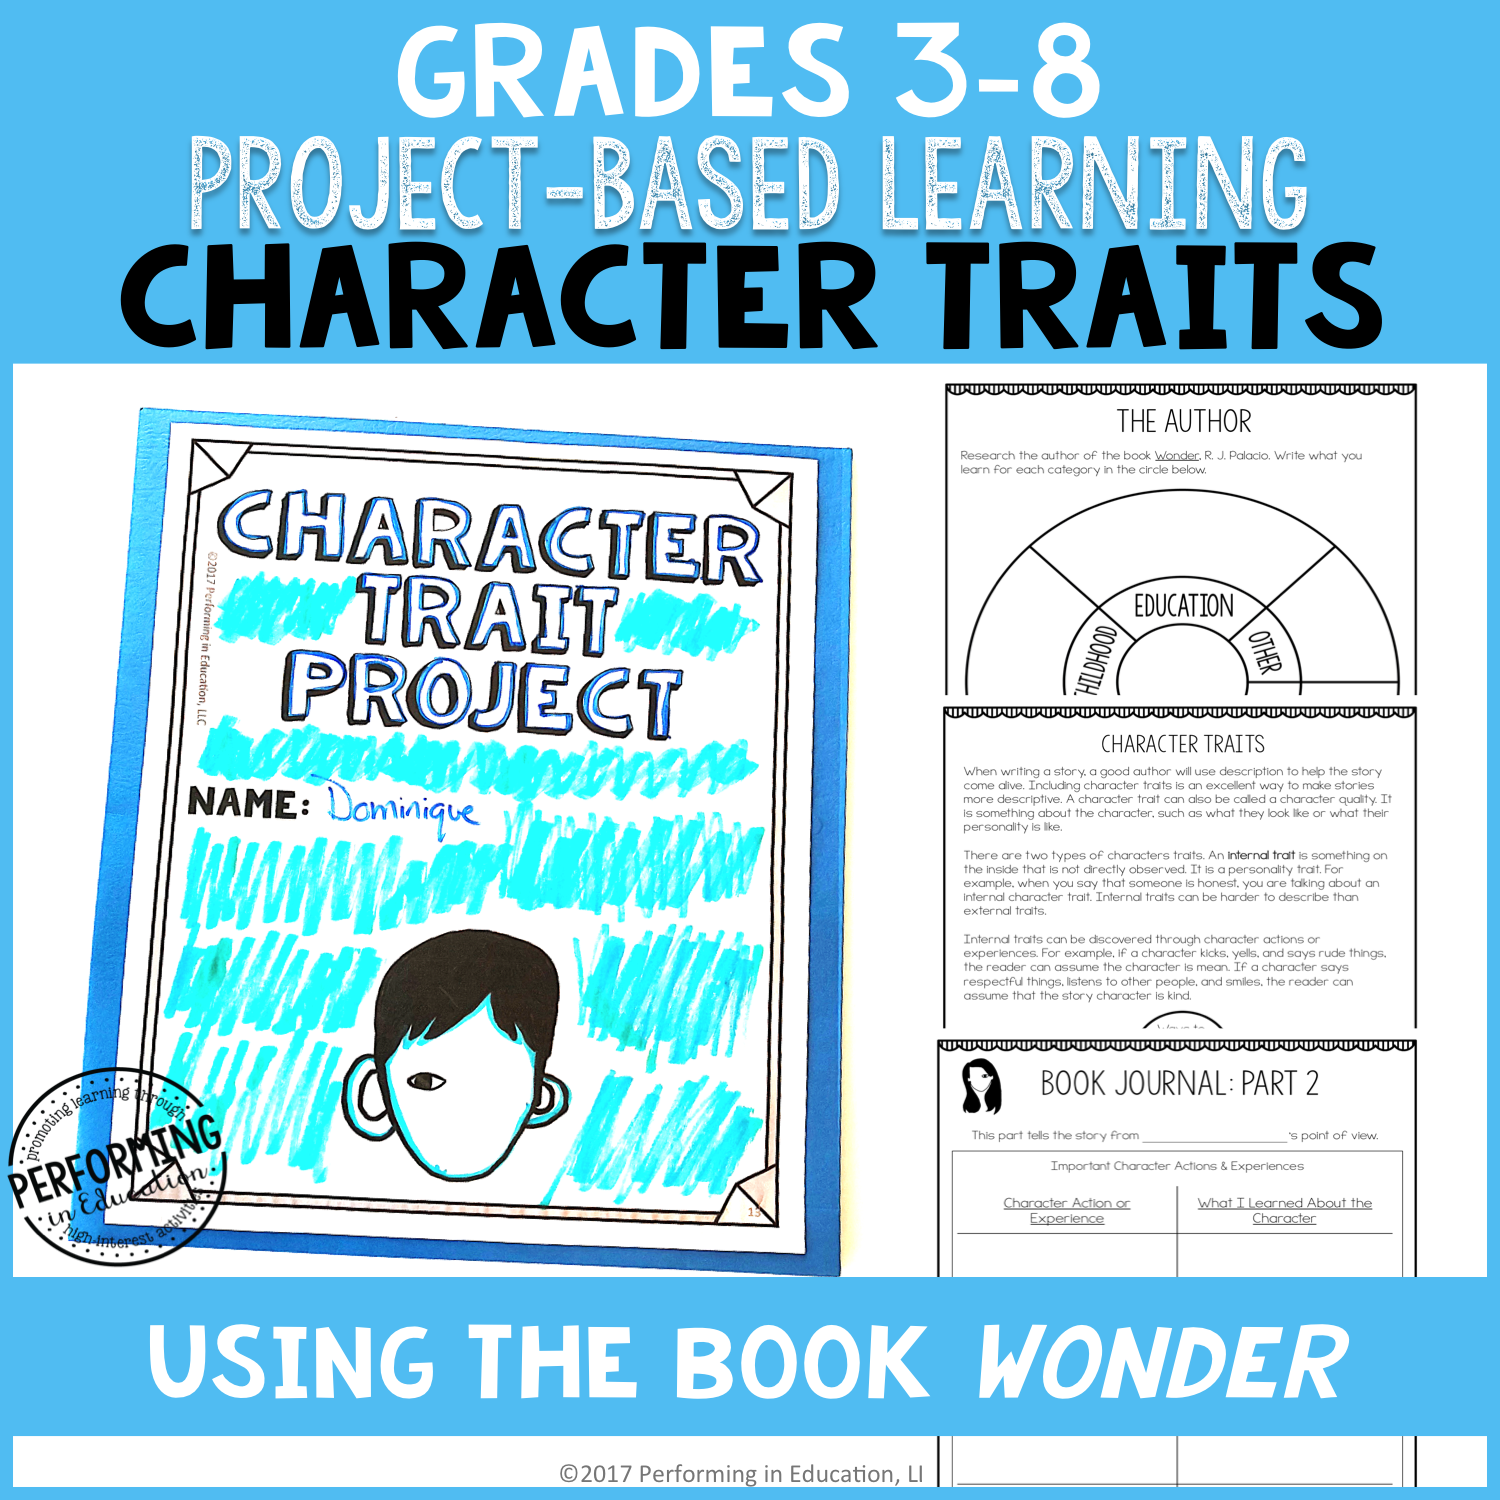 Grades 3-8: Character Traits ELA Project-Based Learning Activity Using Wonder PRINT&DIGITAL